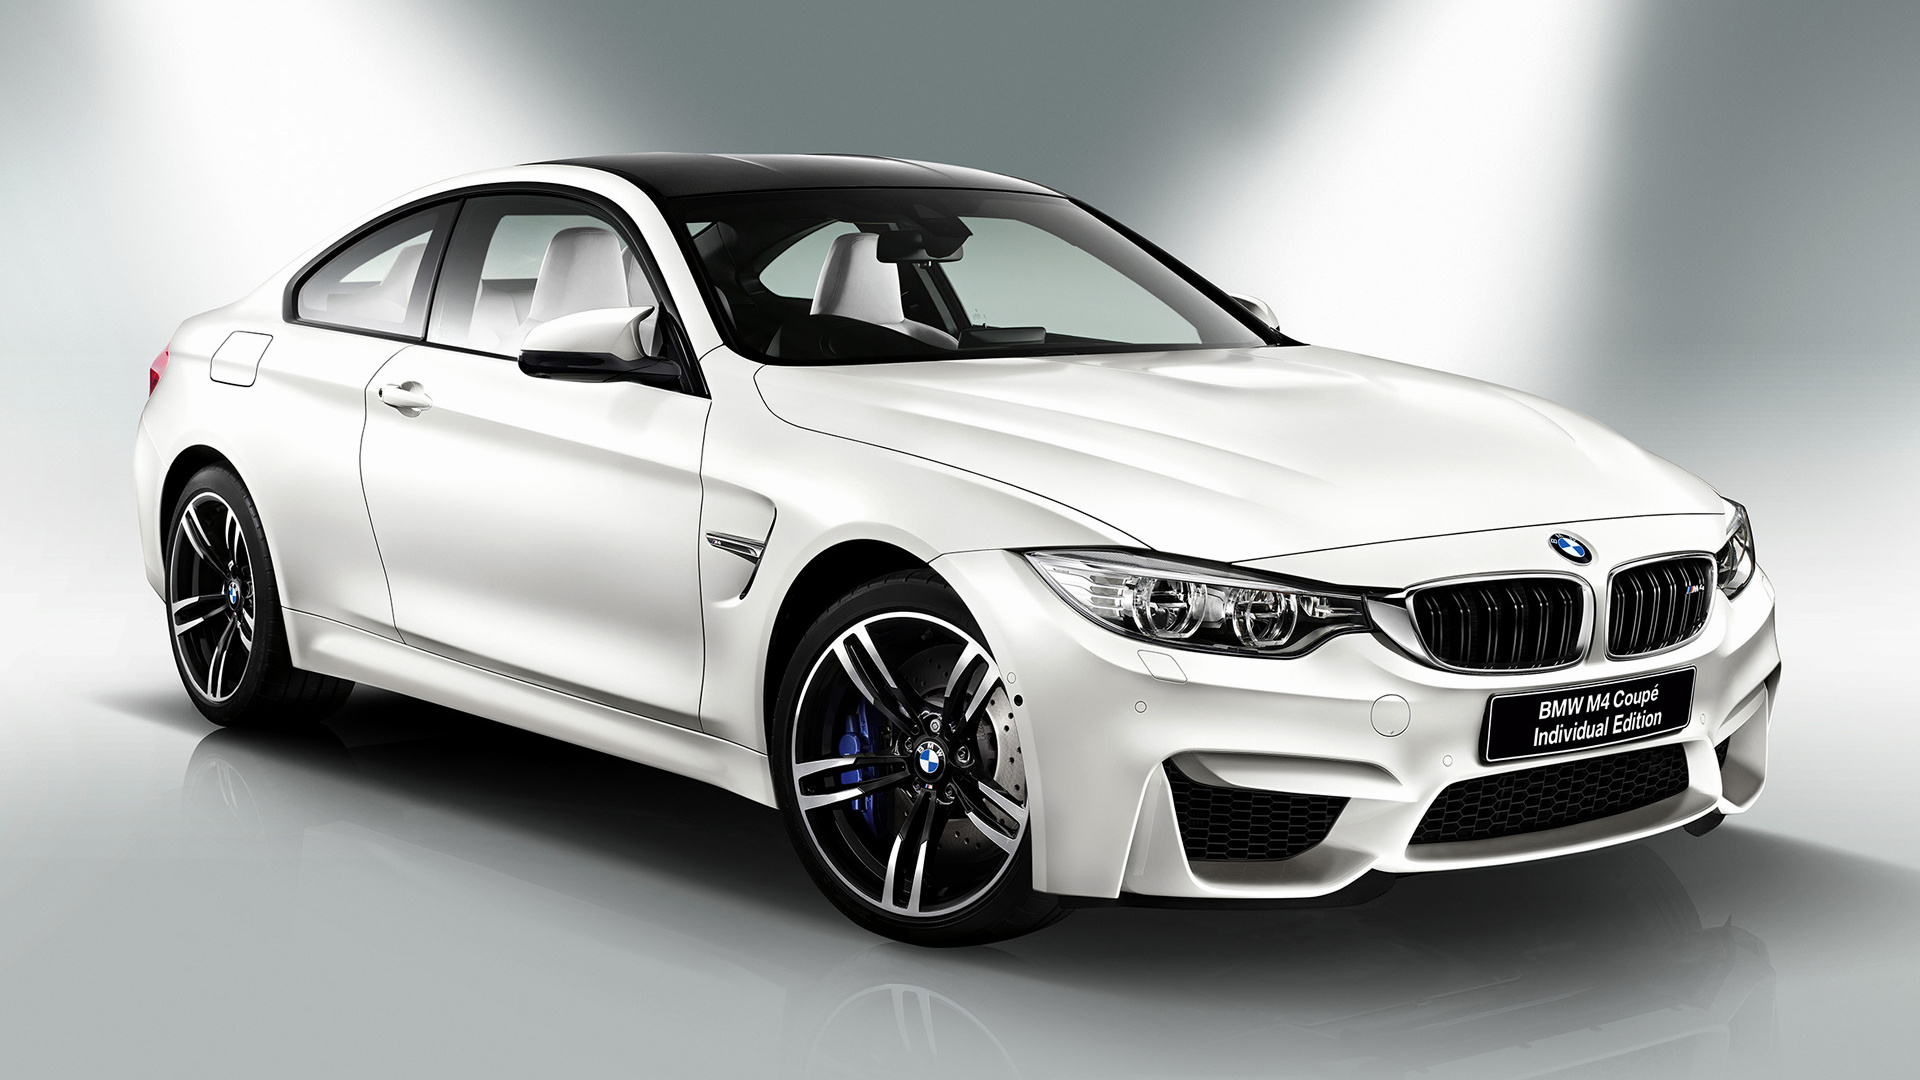 2015 Bmw M4 Coupe Individual Edition Jp Wallpapers And